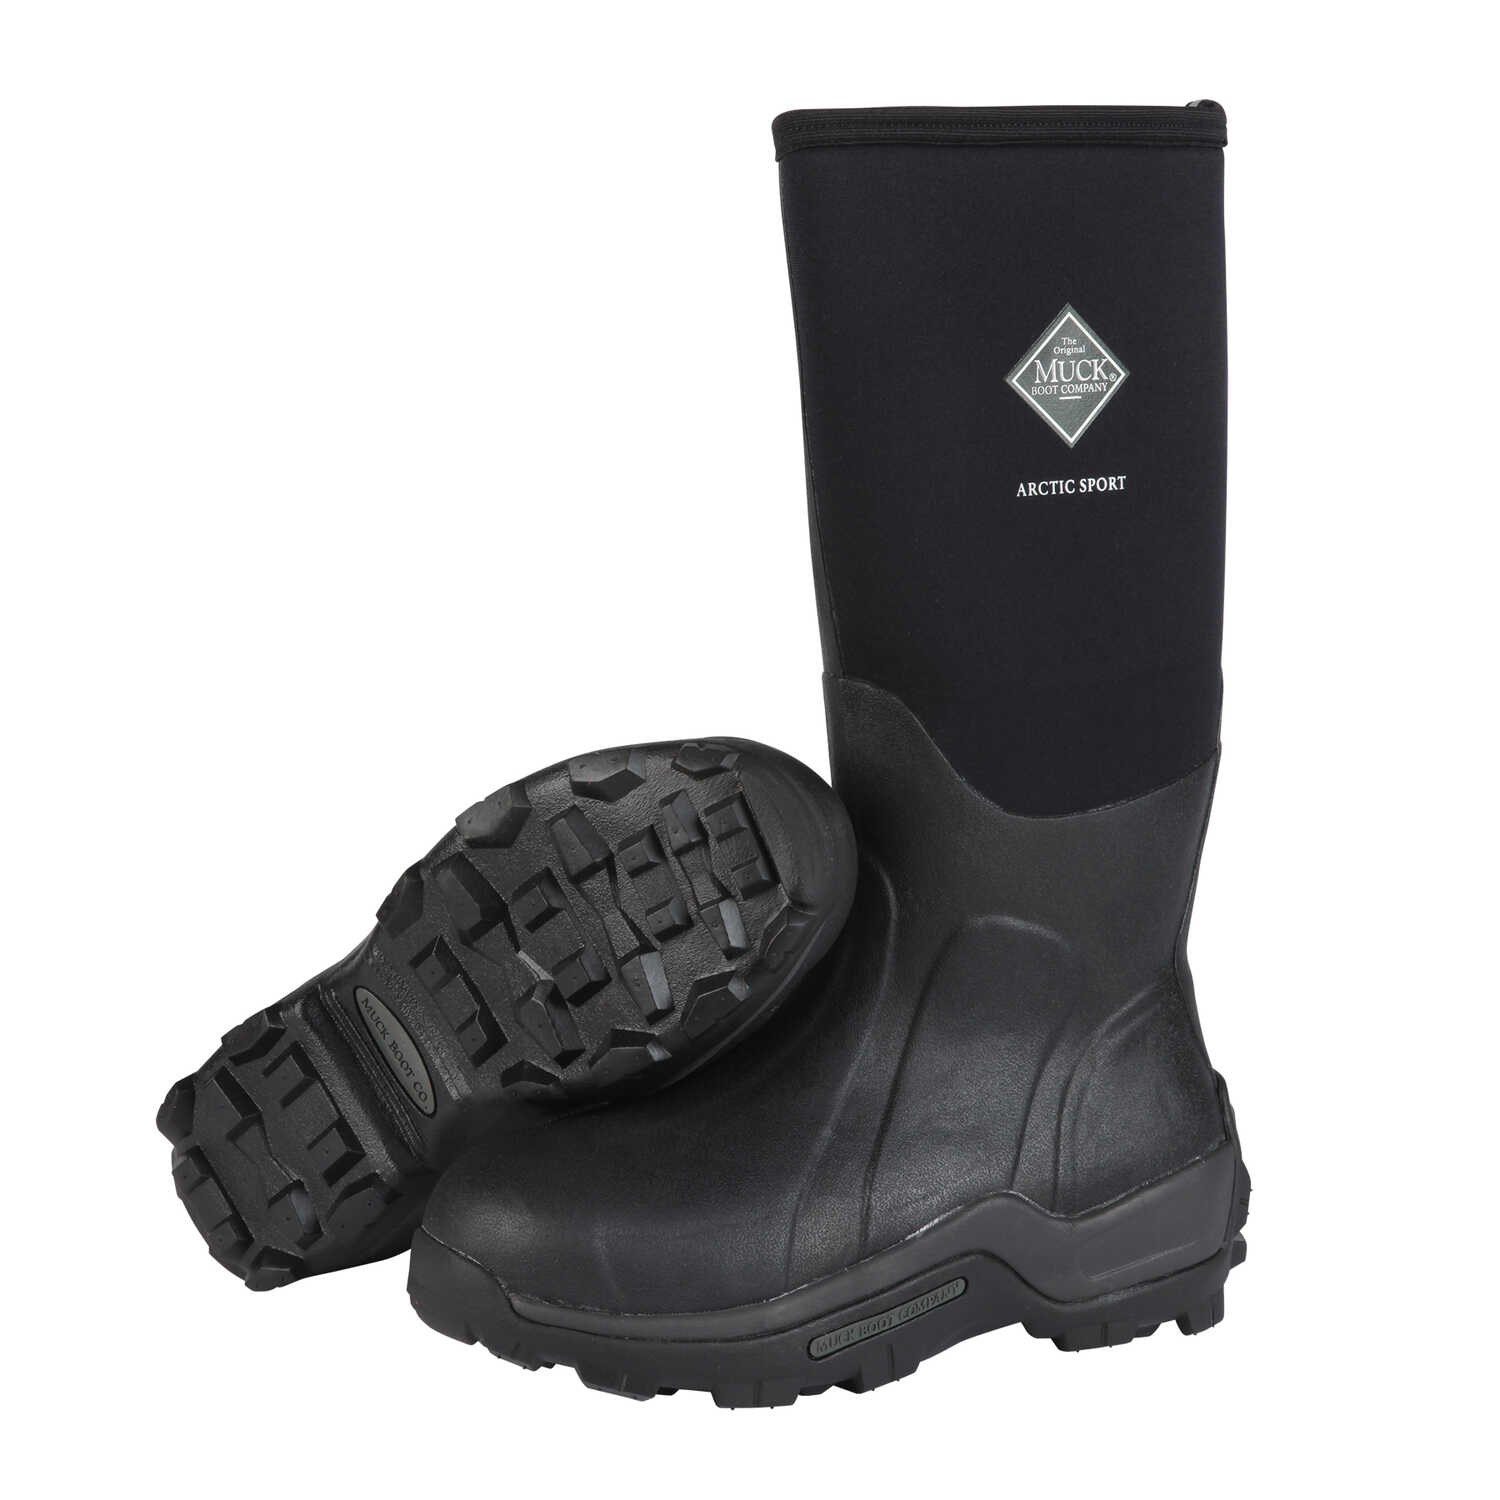 The Original Muck Boot Company  Arctic Sport  Men's  Boots  8 US  Black